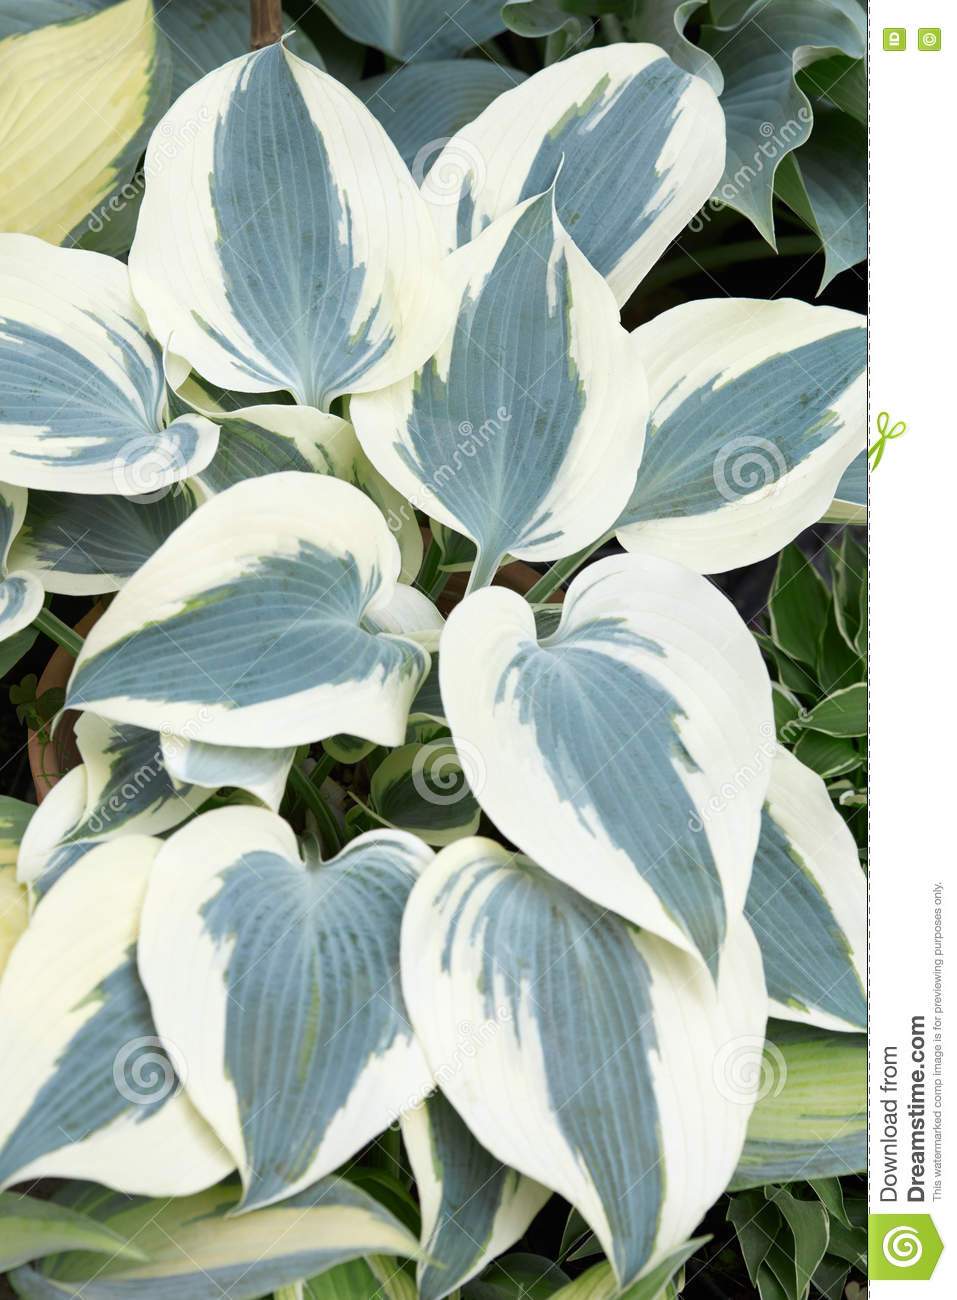 Hosta Or Plantain Lilies With White And Green Leaves Stock Photo.